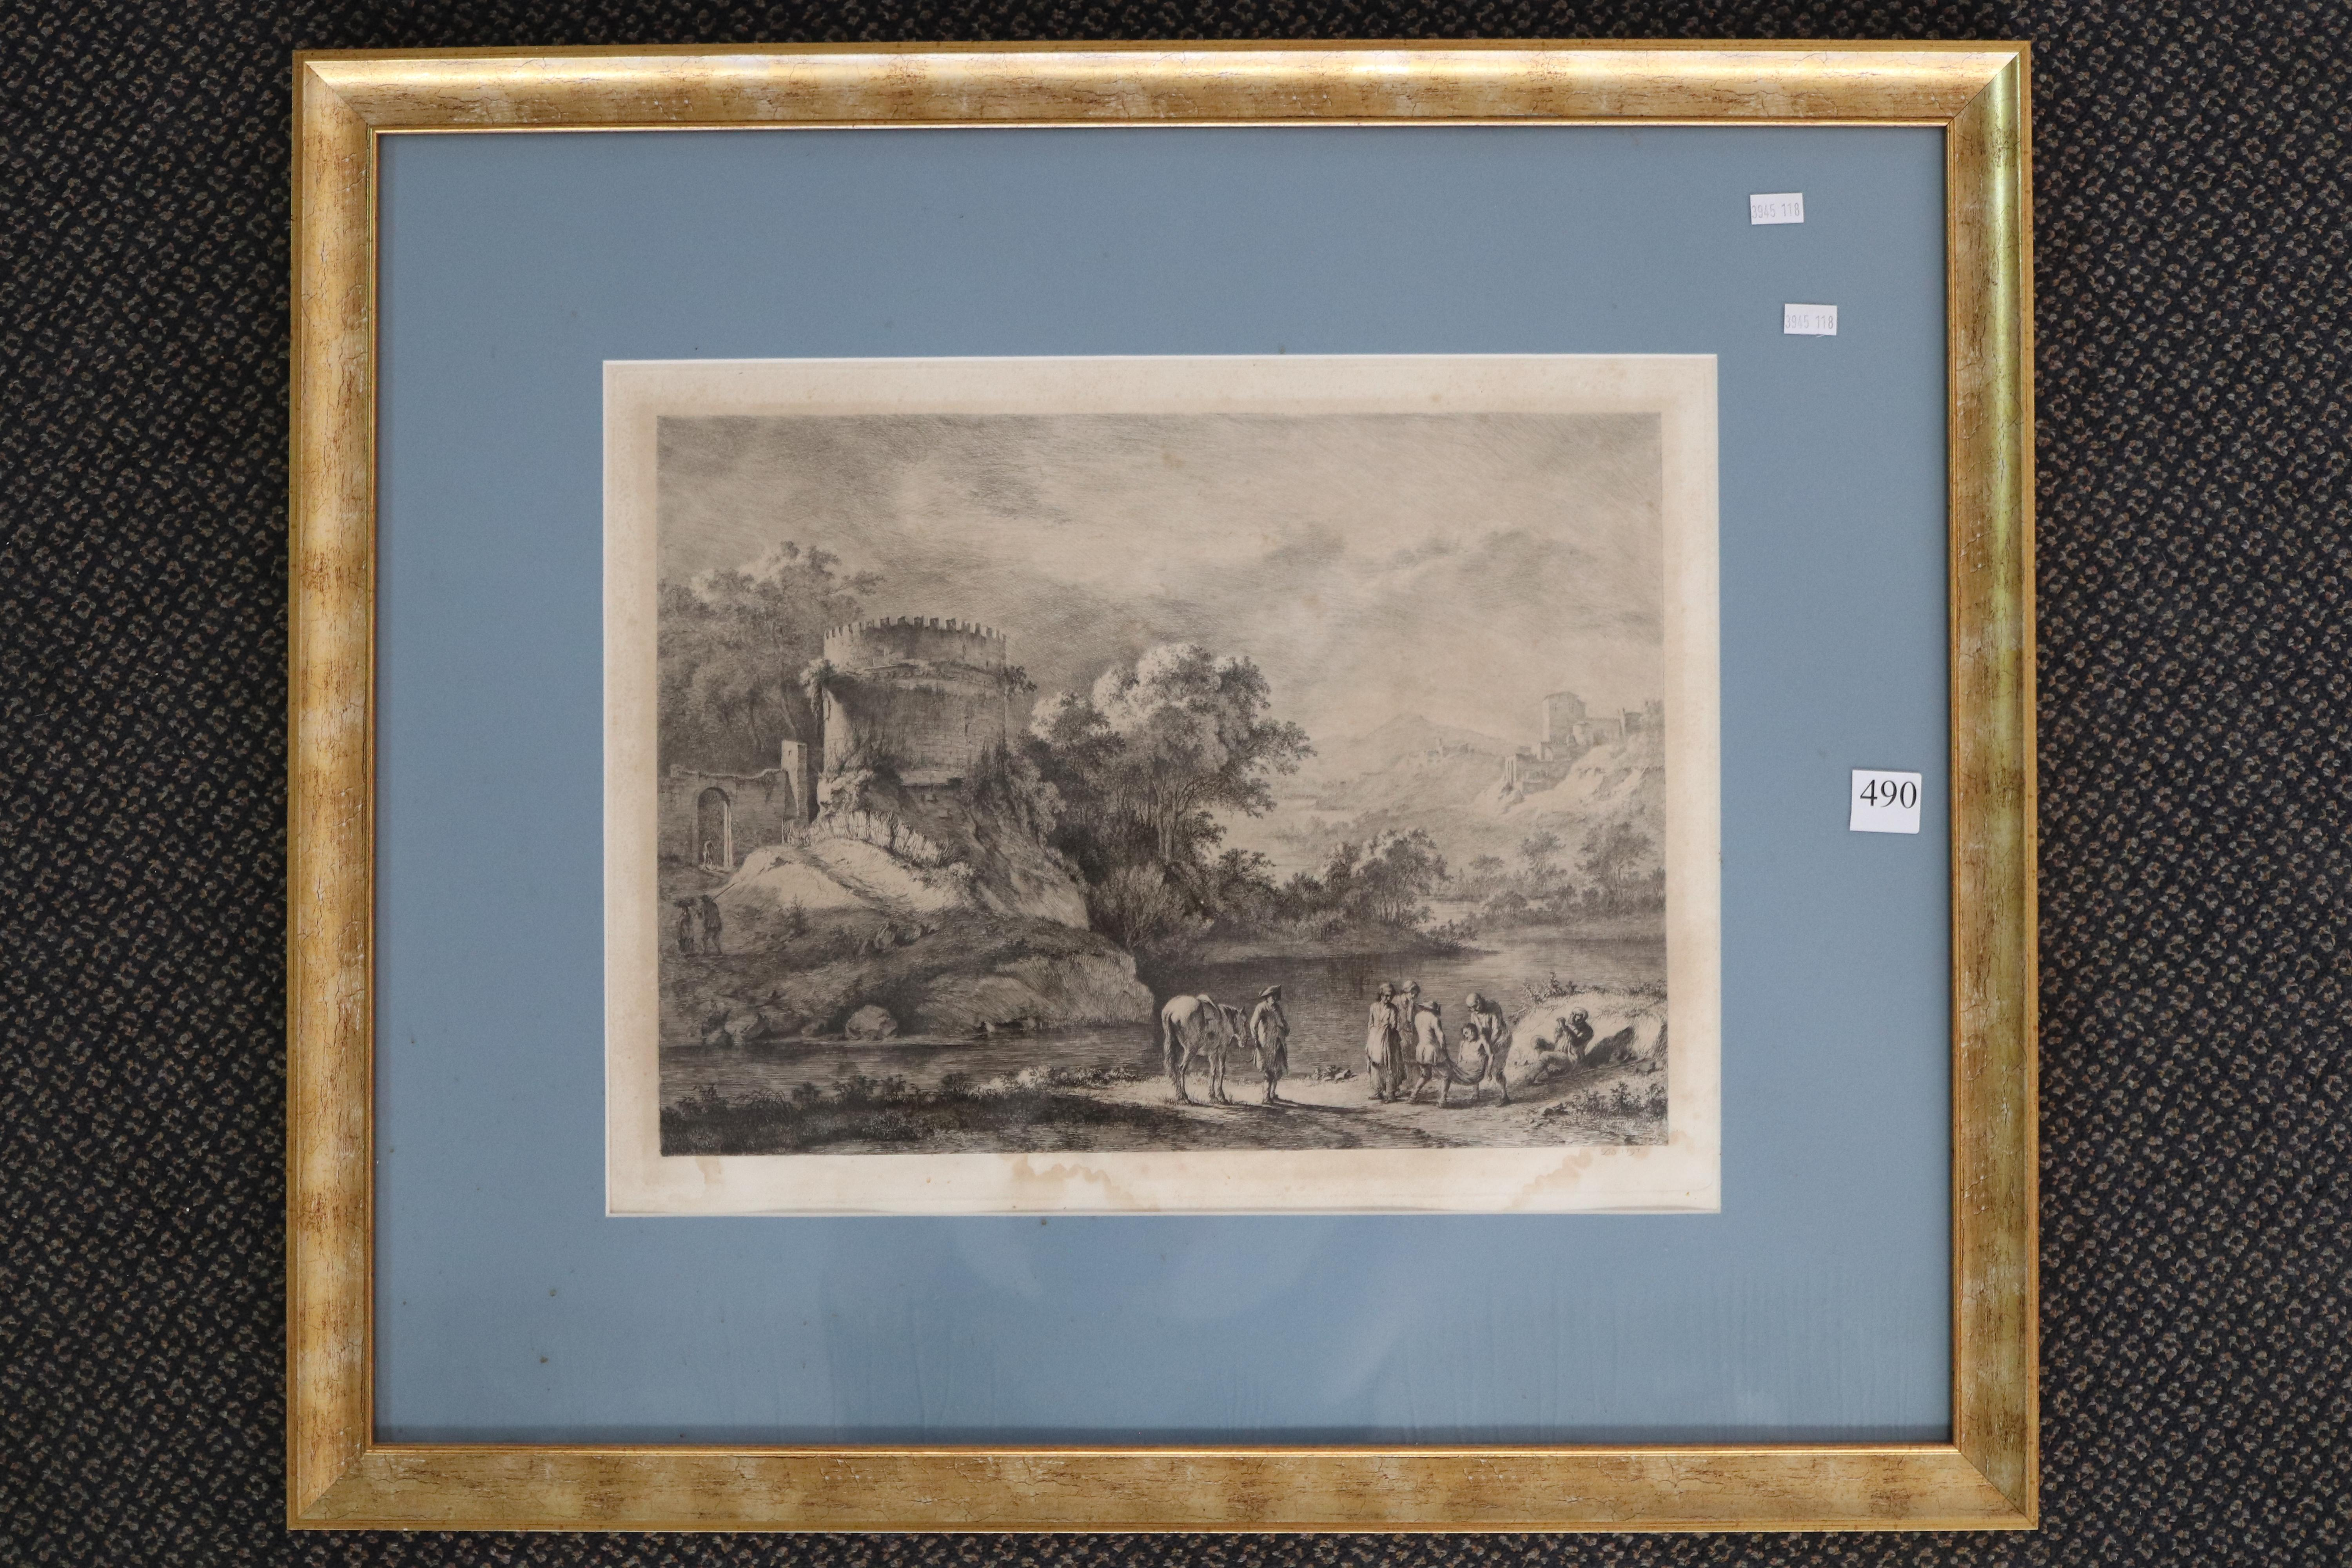 "JEAN JACQUES DE BOISSIEU, ETCHING, "" STRONG WATERS"" SIGNED LOWER RIGHT D, 1797, MEASURES 41CM X 30CM, (MINOR FOXING AND WATER DAMAGED)"